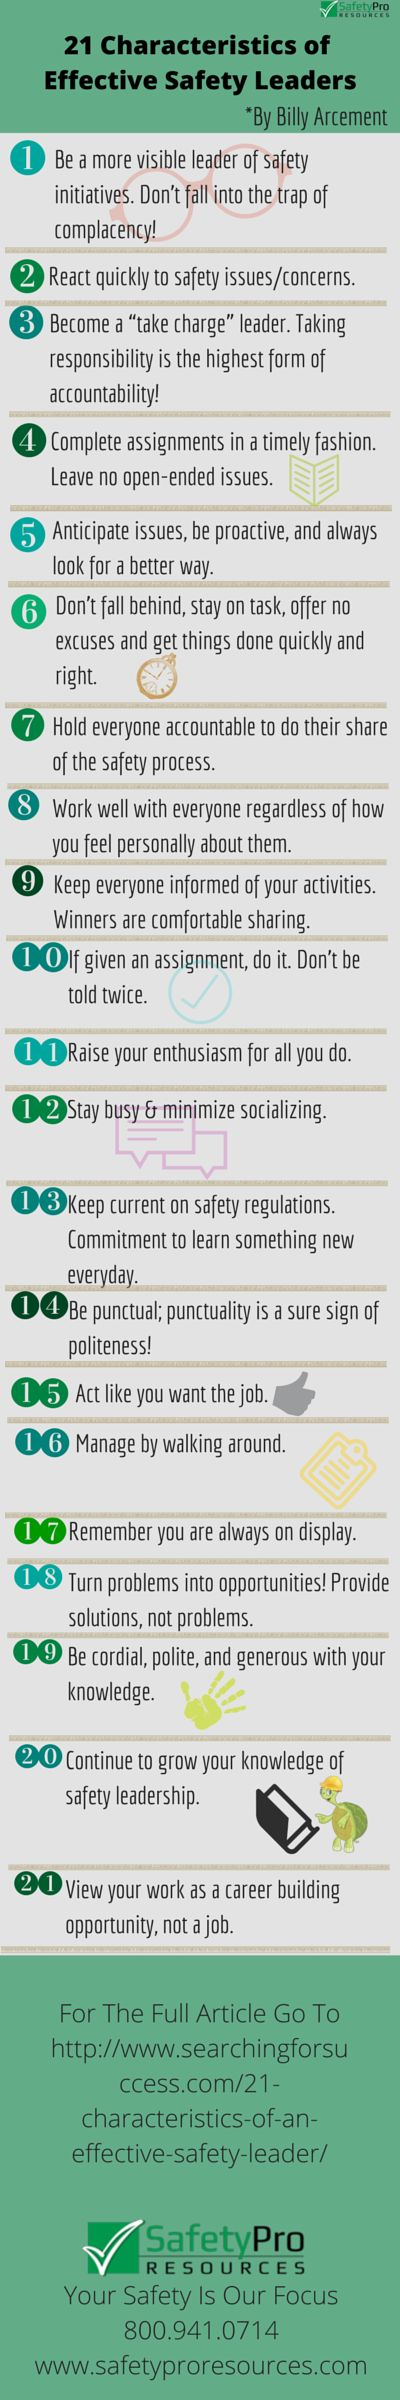 21 Characteristics of Effective Safety Leaders [Infographic]